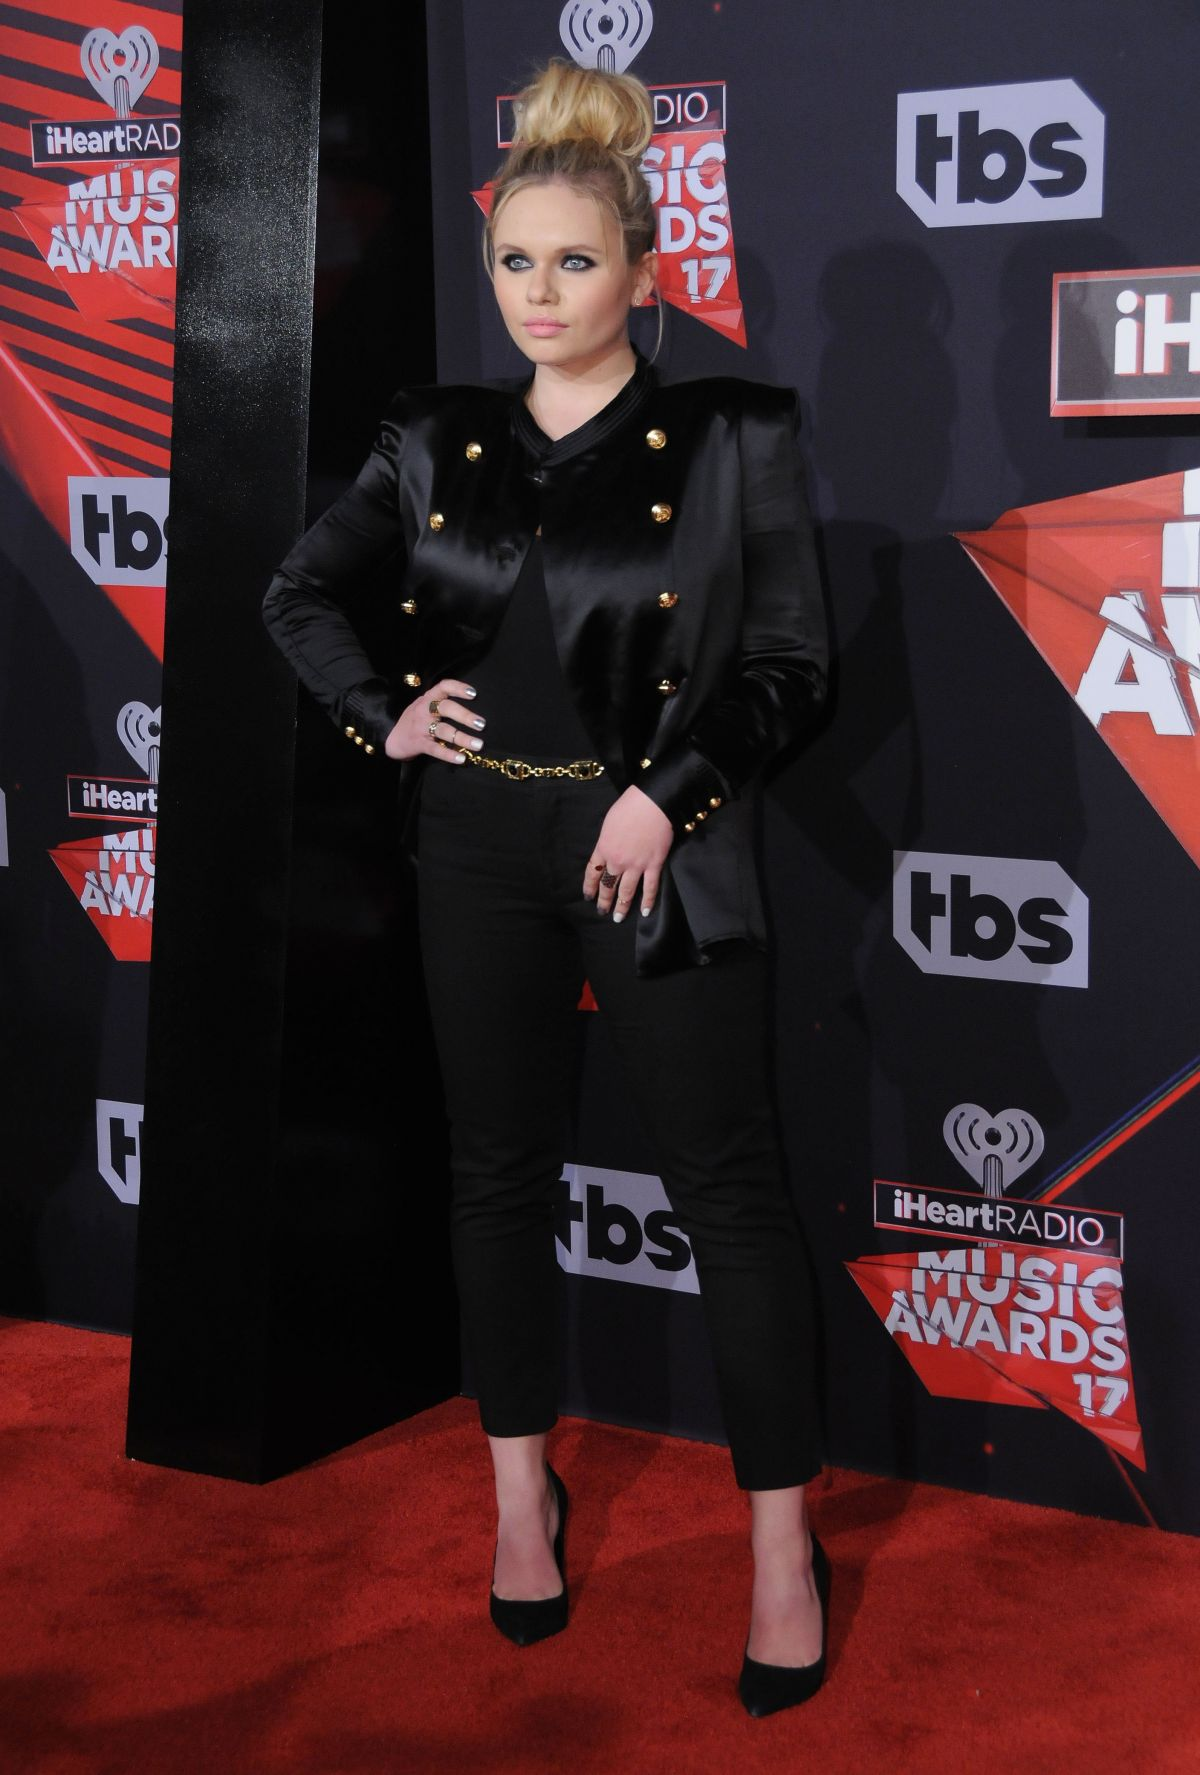 ALLI SIMPSON at 2017 iHeartRadio Music Awards in Los Angeles 03/05/2017